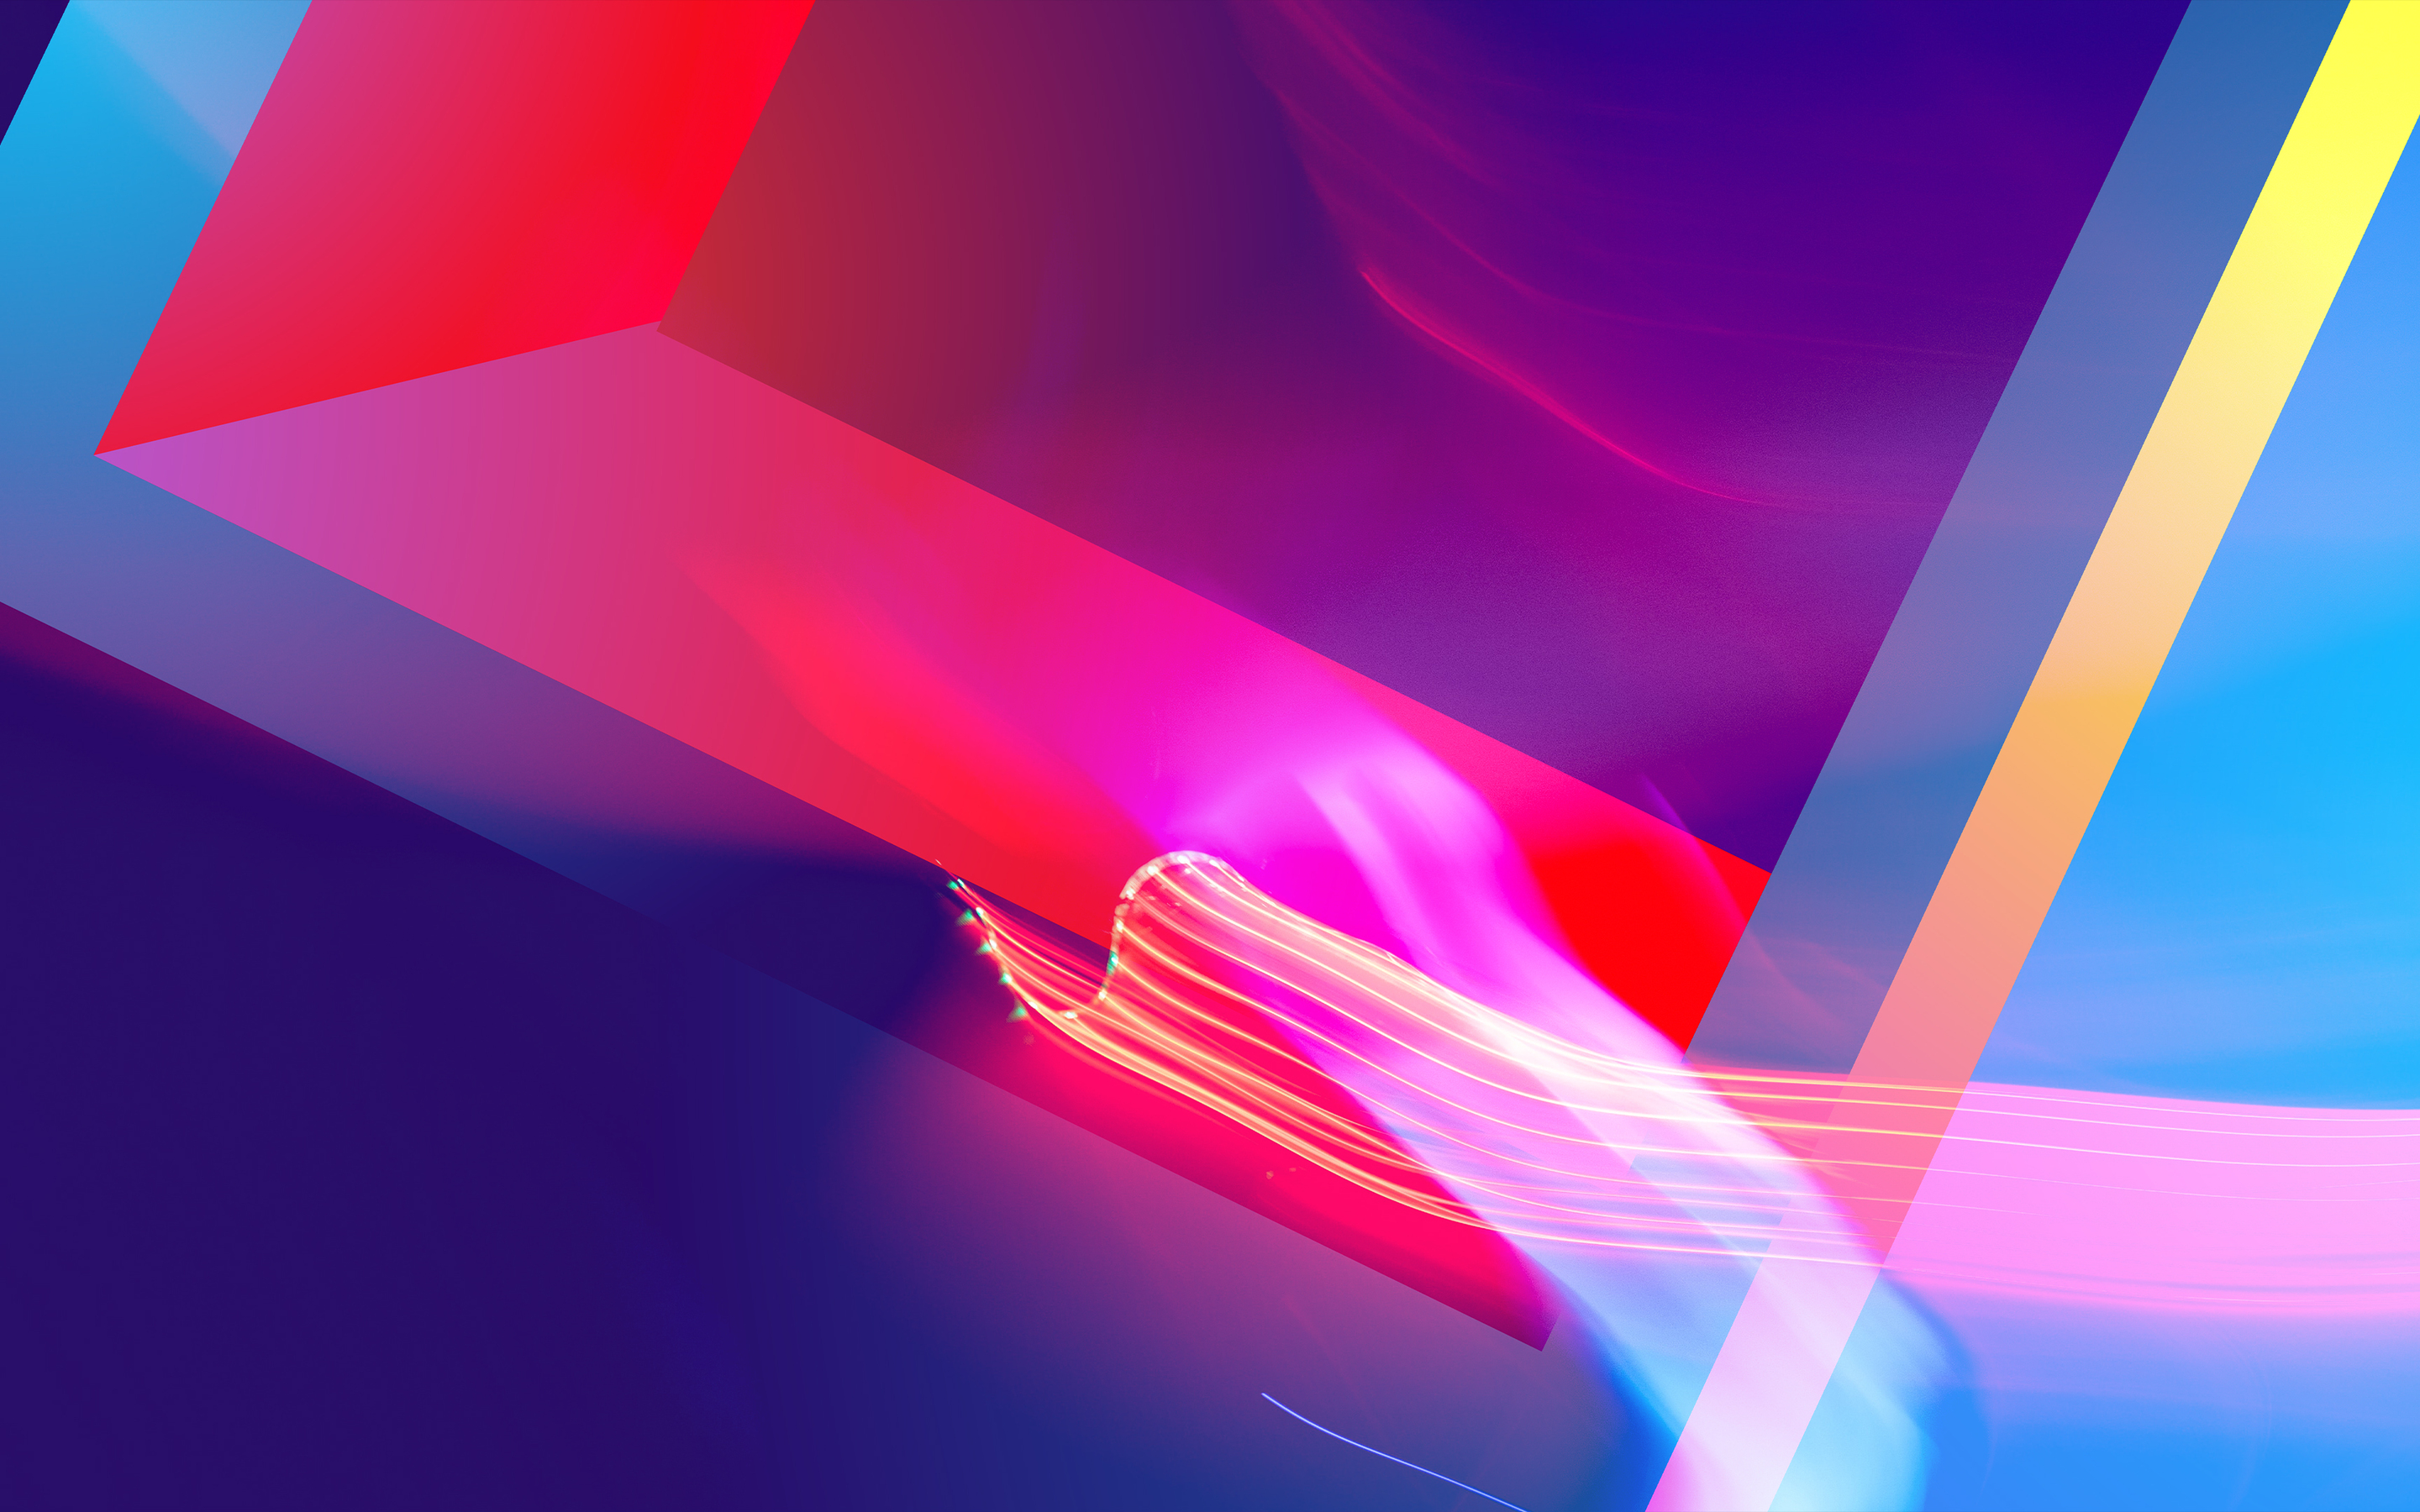 abstract-lines-4k-d6.jpg